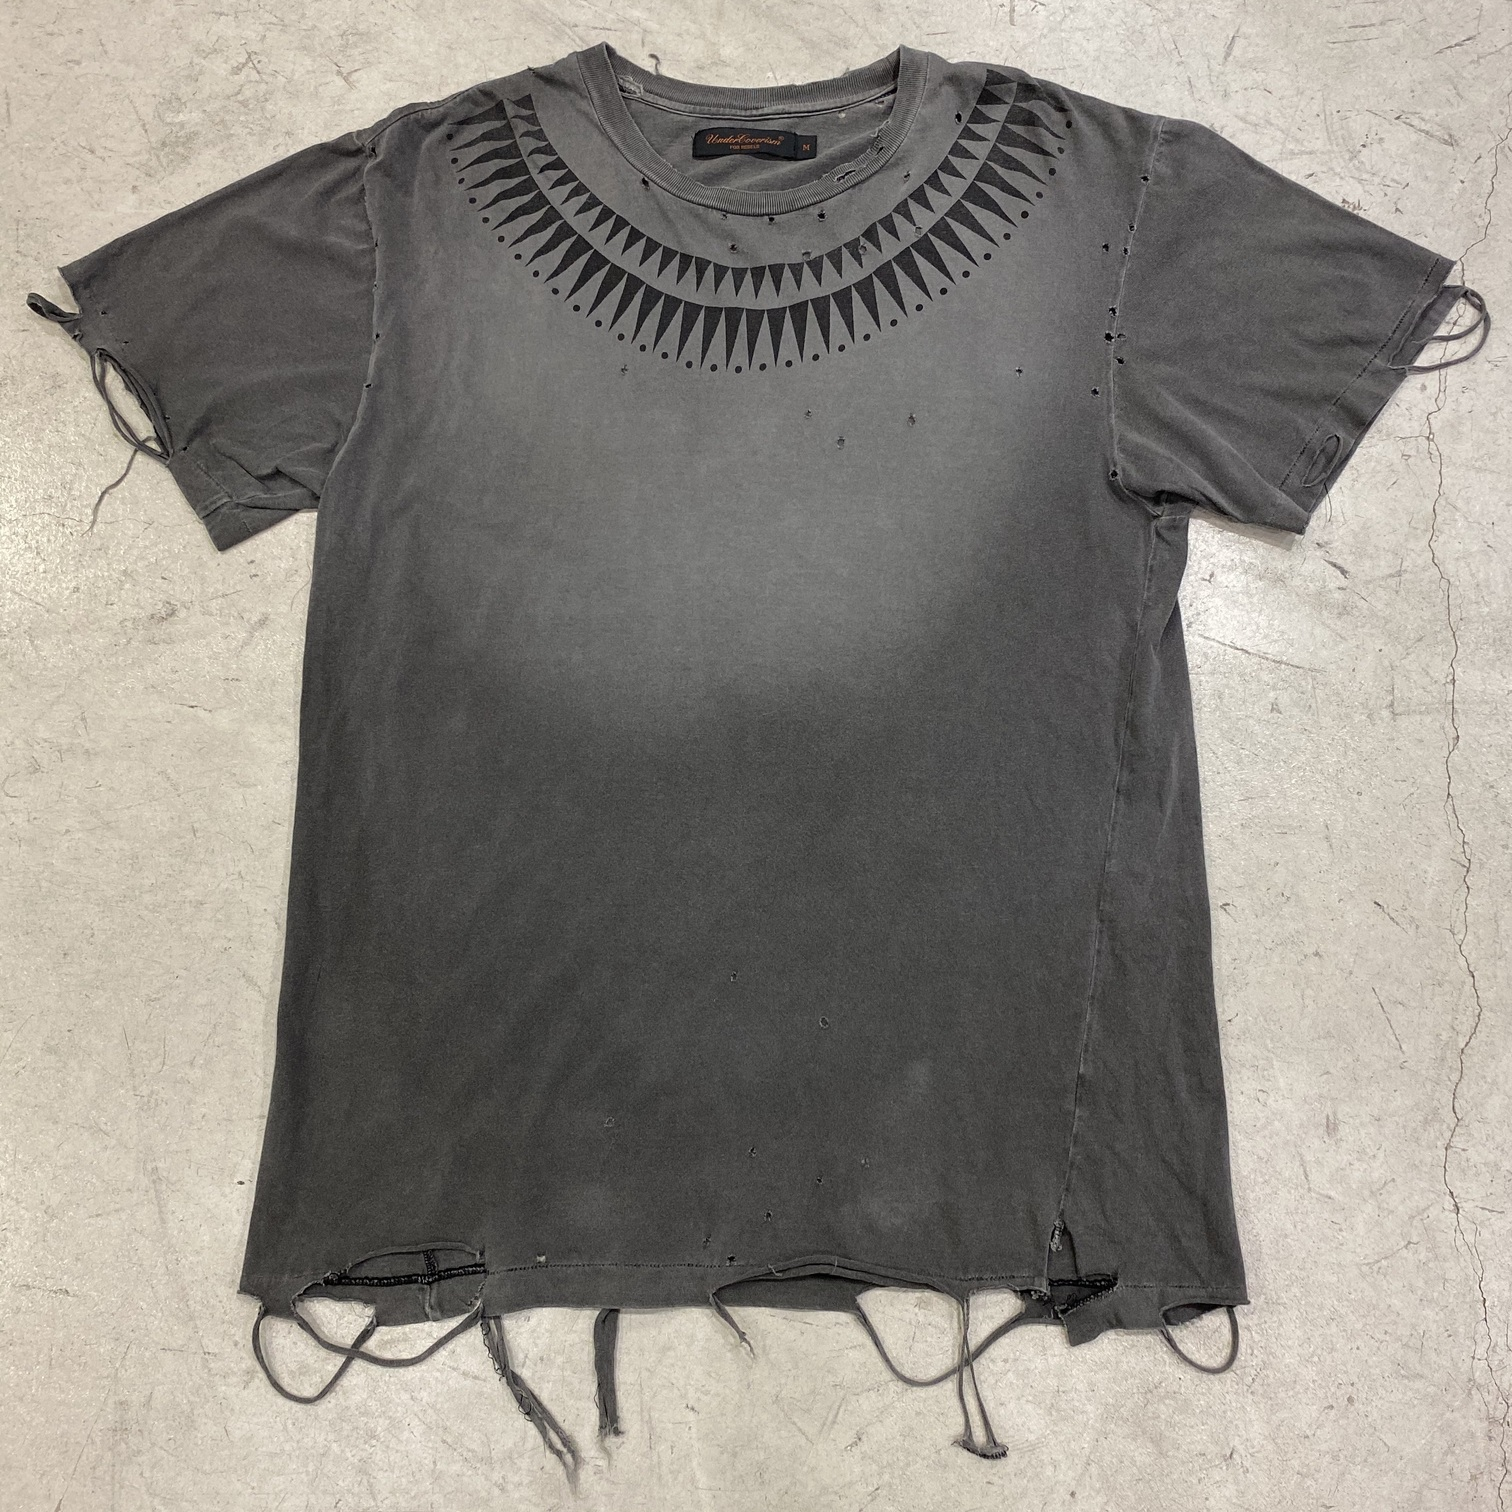 Undercover 2003ss distressed GIZ t-shirt.